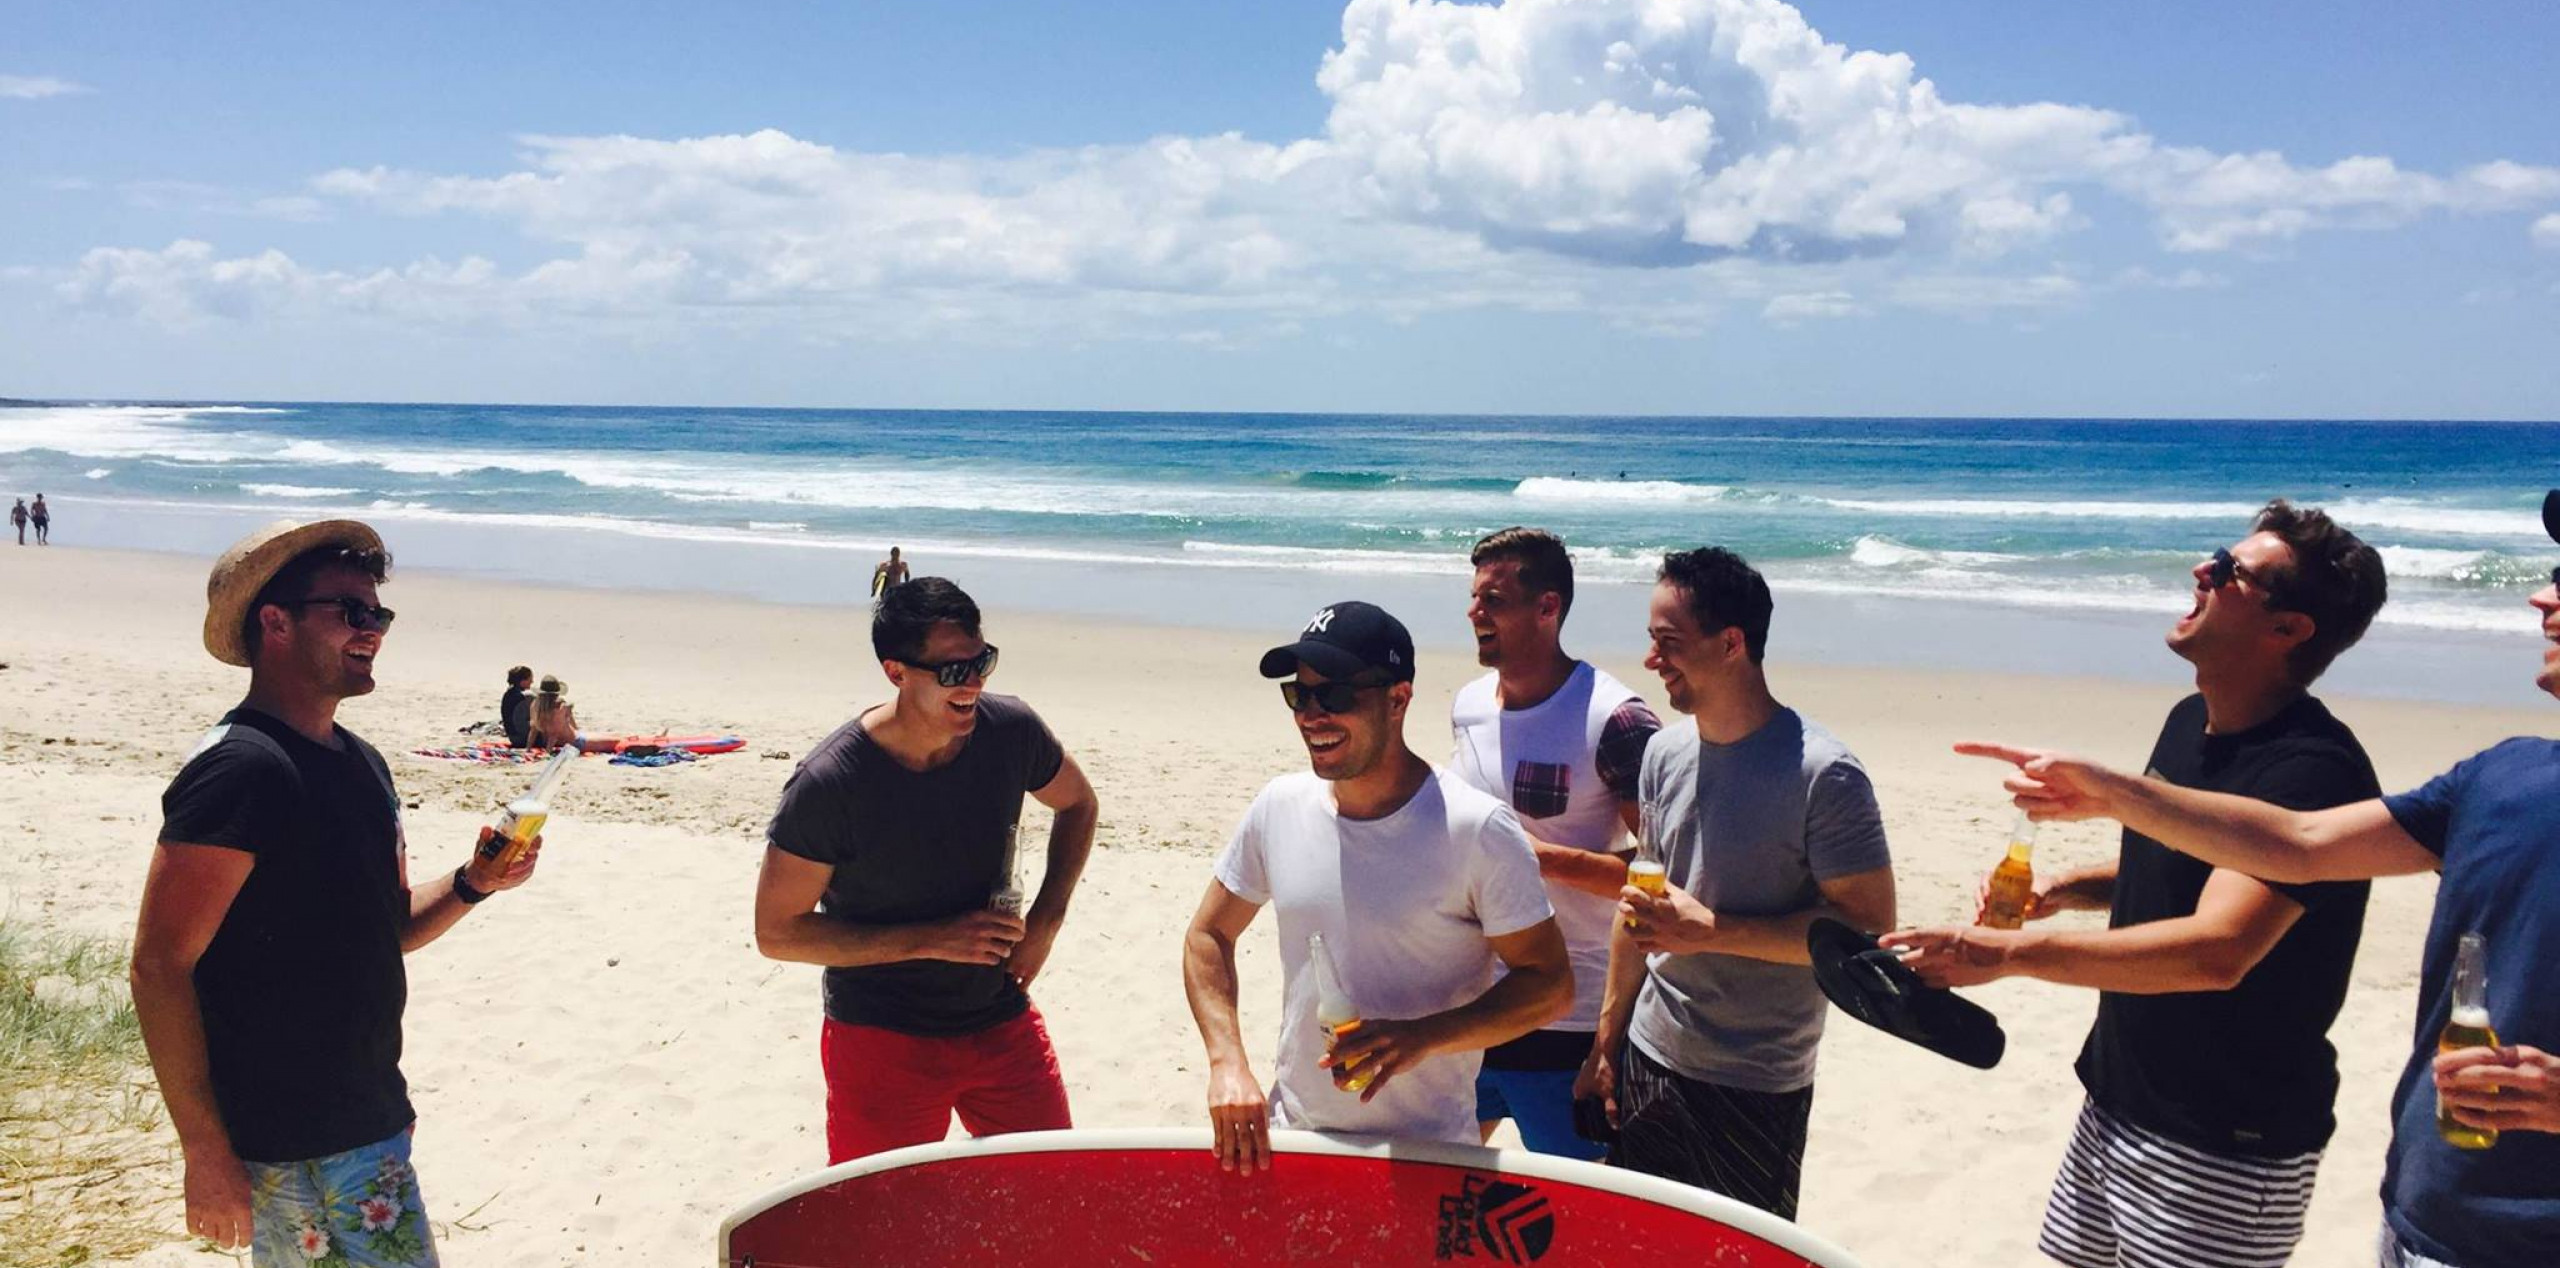 lads surfing